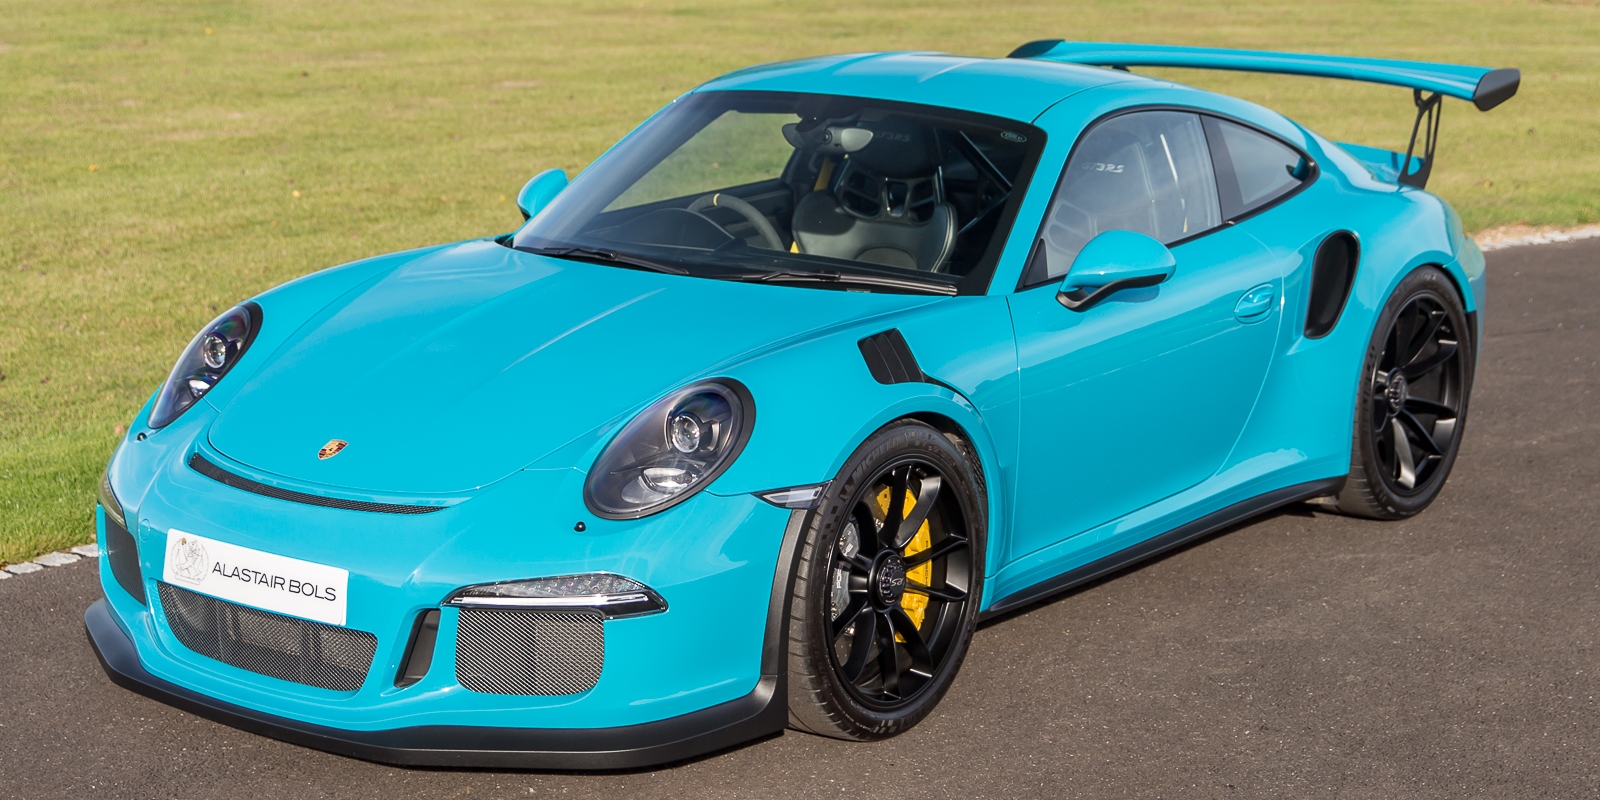 Porsche 991.1 GT3 RS Miami Blue